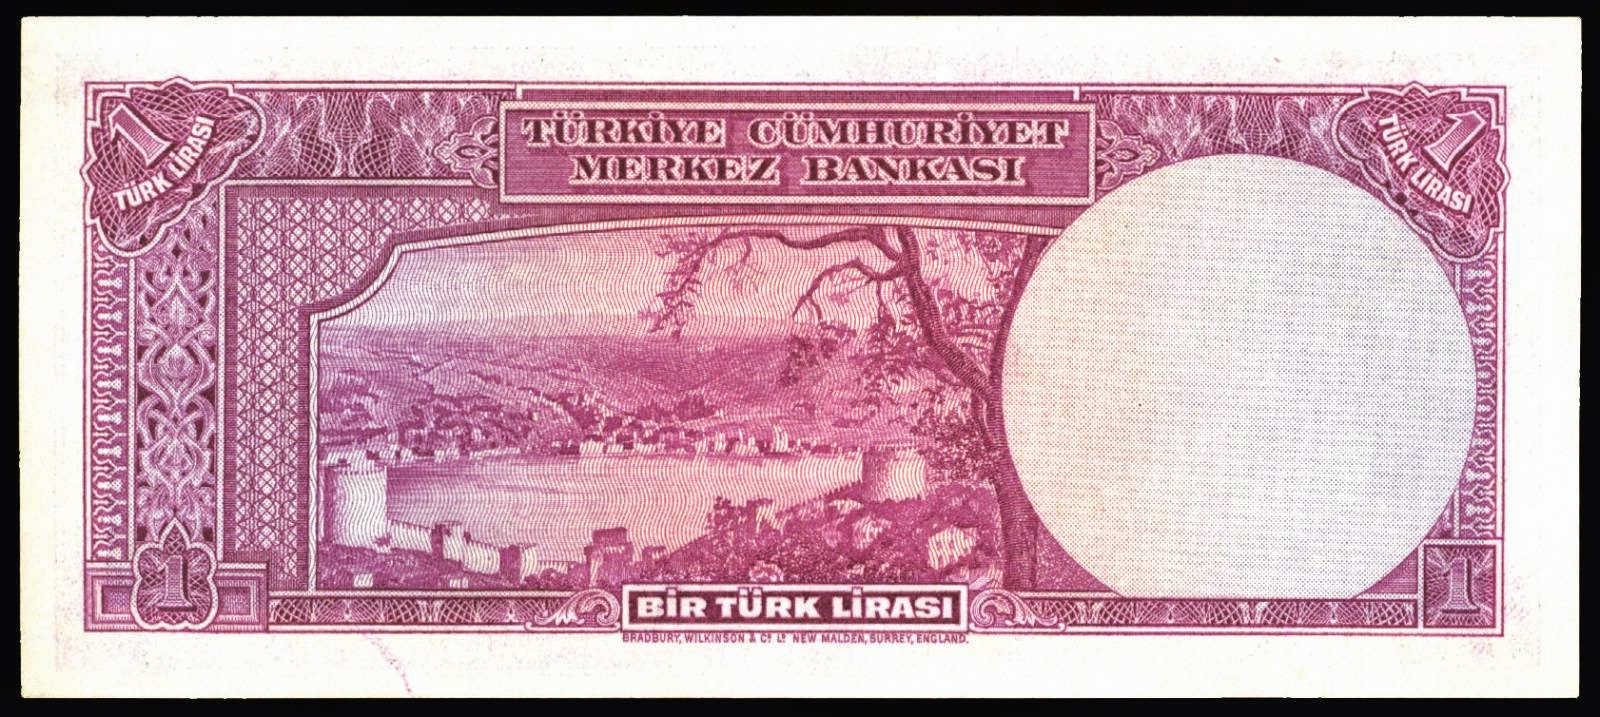 Old Turkish Lira Notes Bills Banknotes